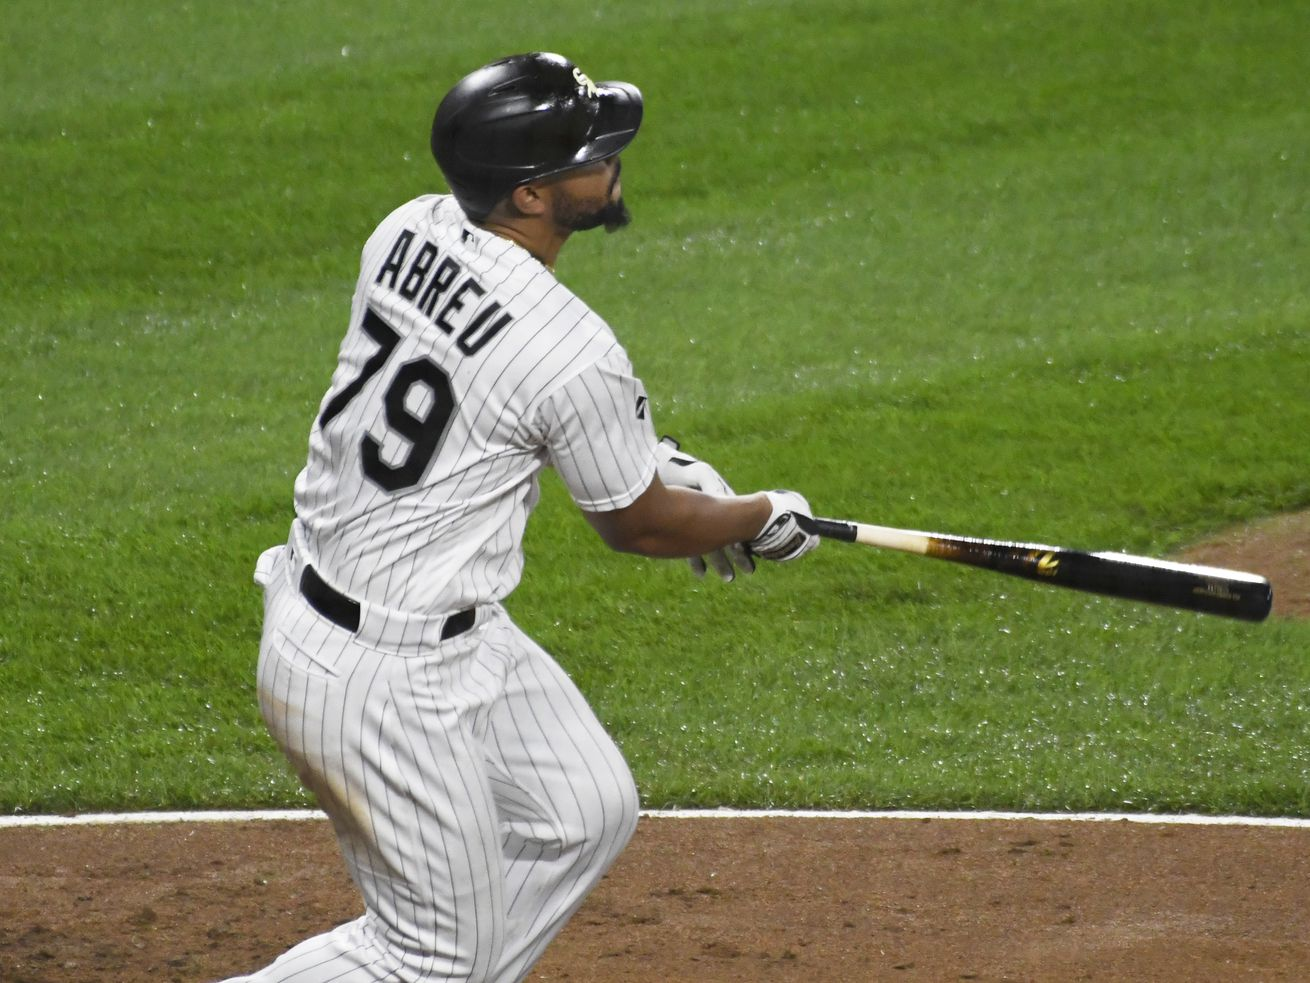 How a rout that? Abreu's 2 home runs, 7 RBI, 5 runs scored power White Sox to 14-0 victory